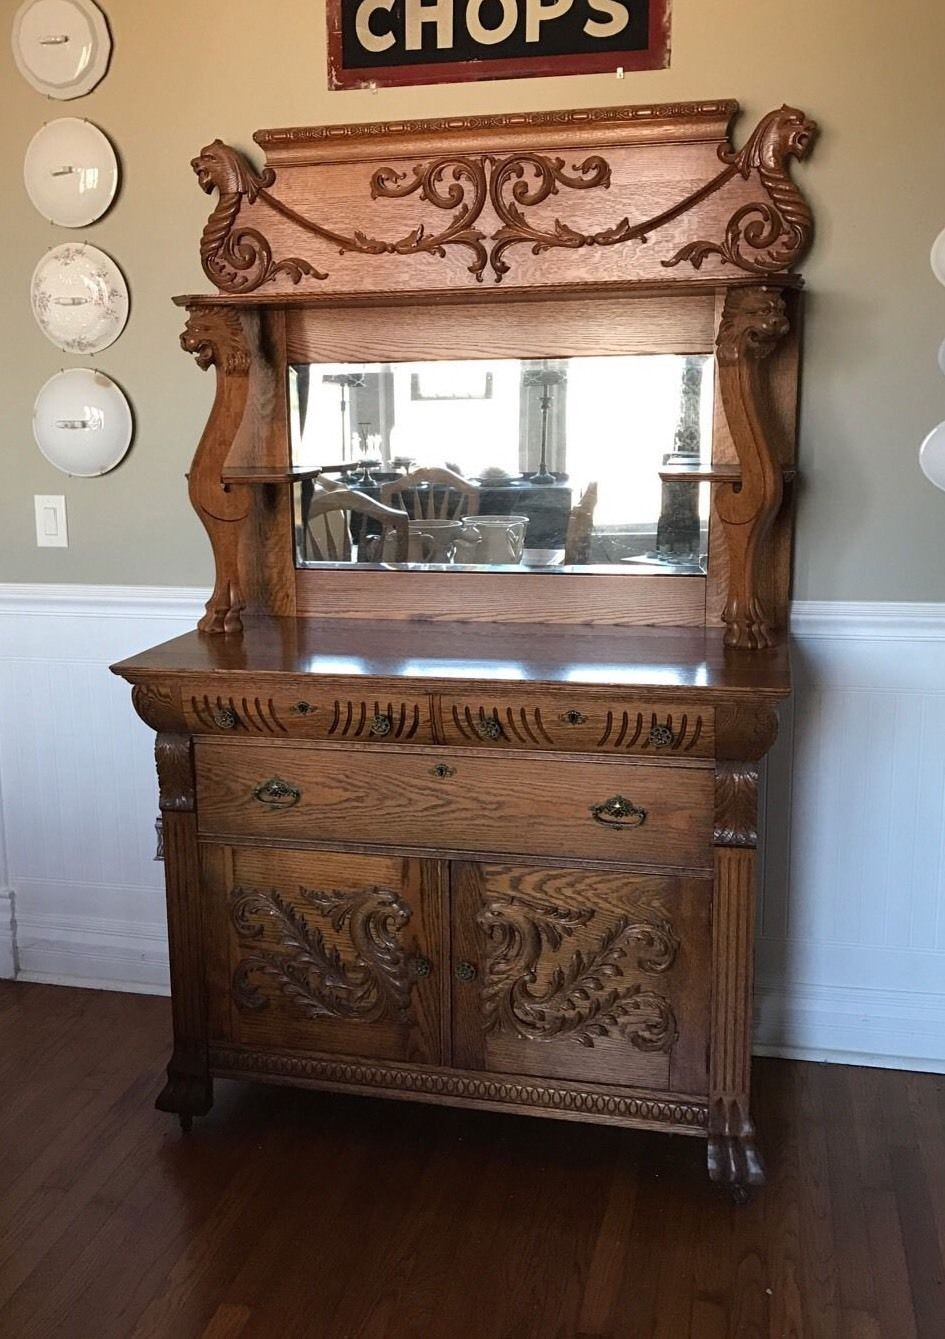 Antique glass flower carvings sideboard crown french furniture - Antique Ornate Oak Sideboard Buffet W Lion Heads Heavily Carved